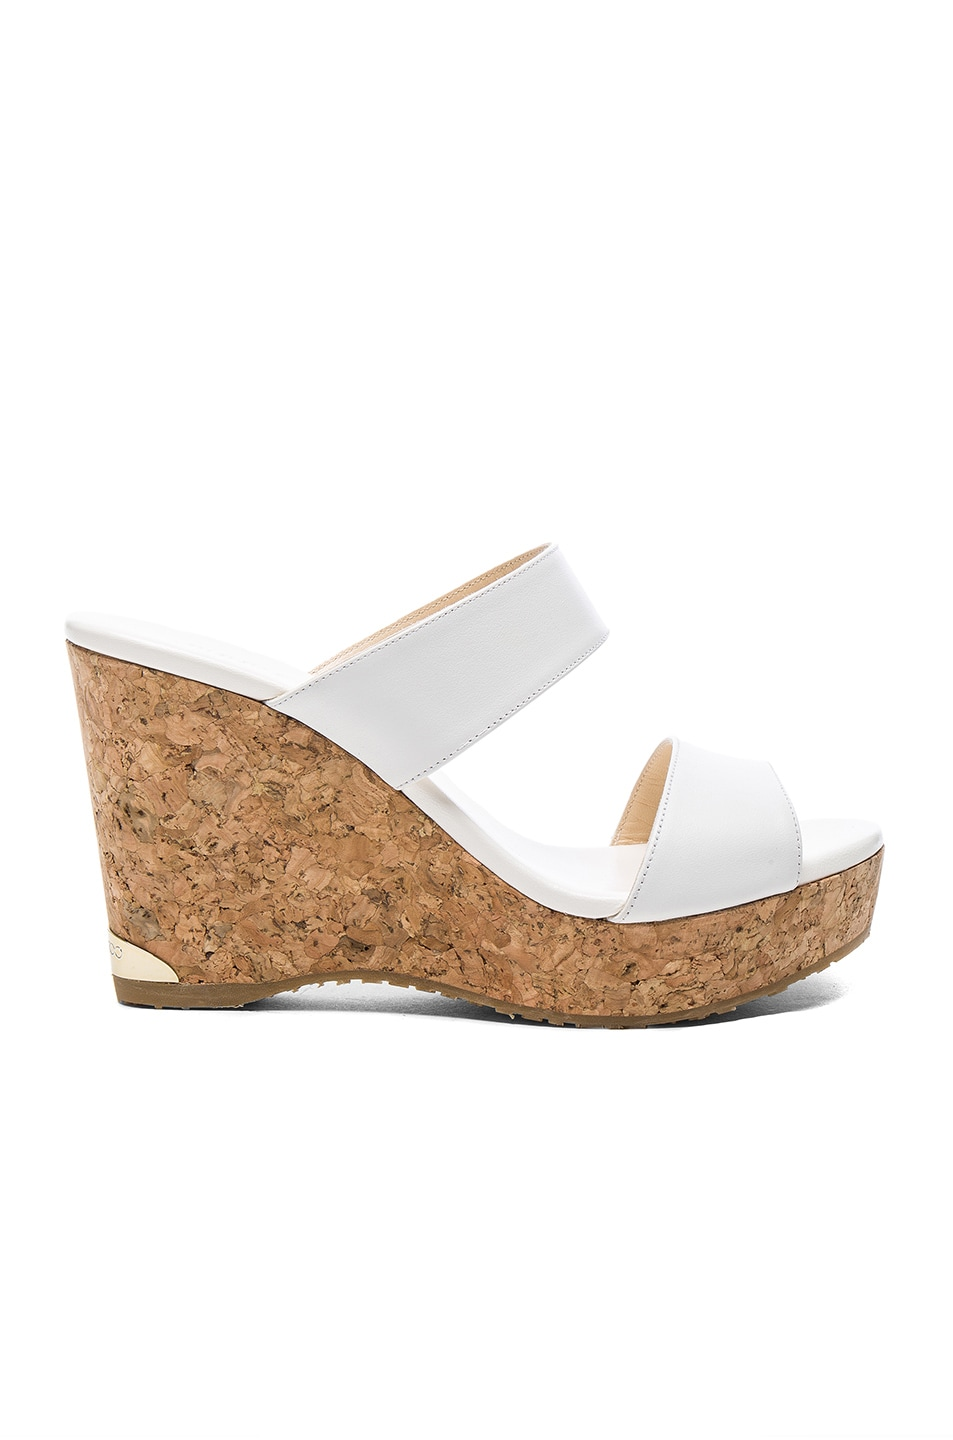 Image 1 of Jimmy Choo Parker Wedge in White